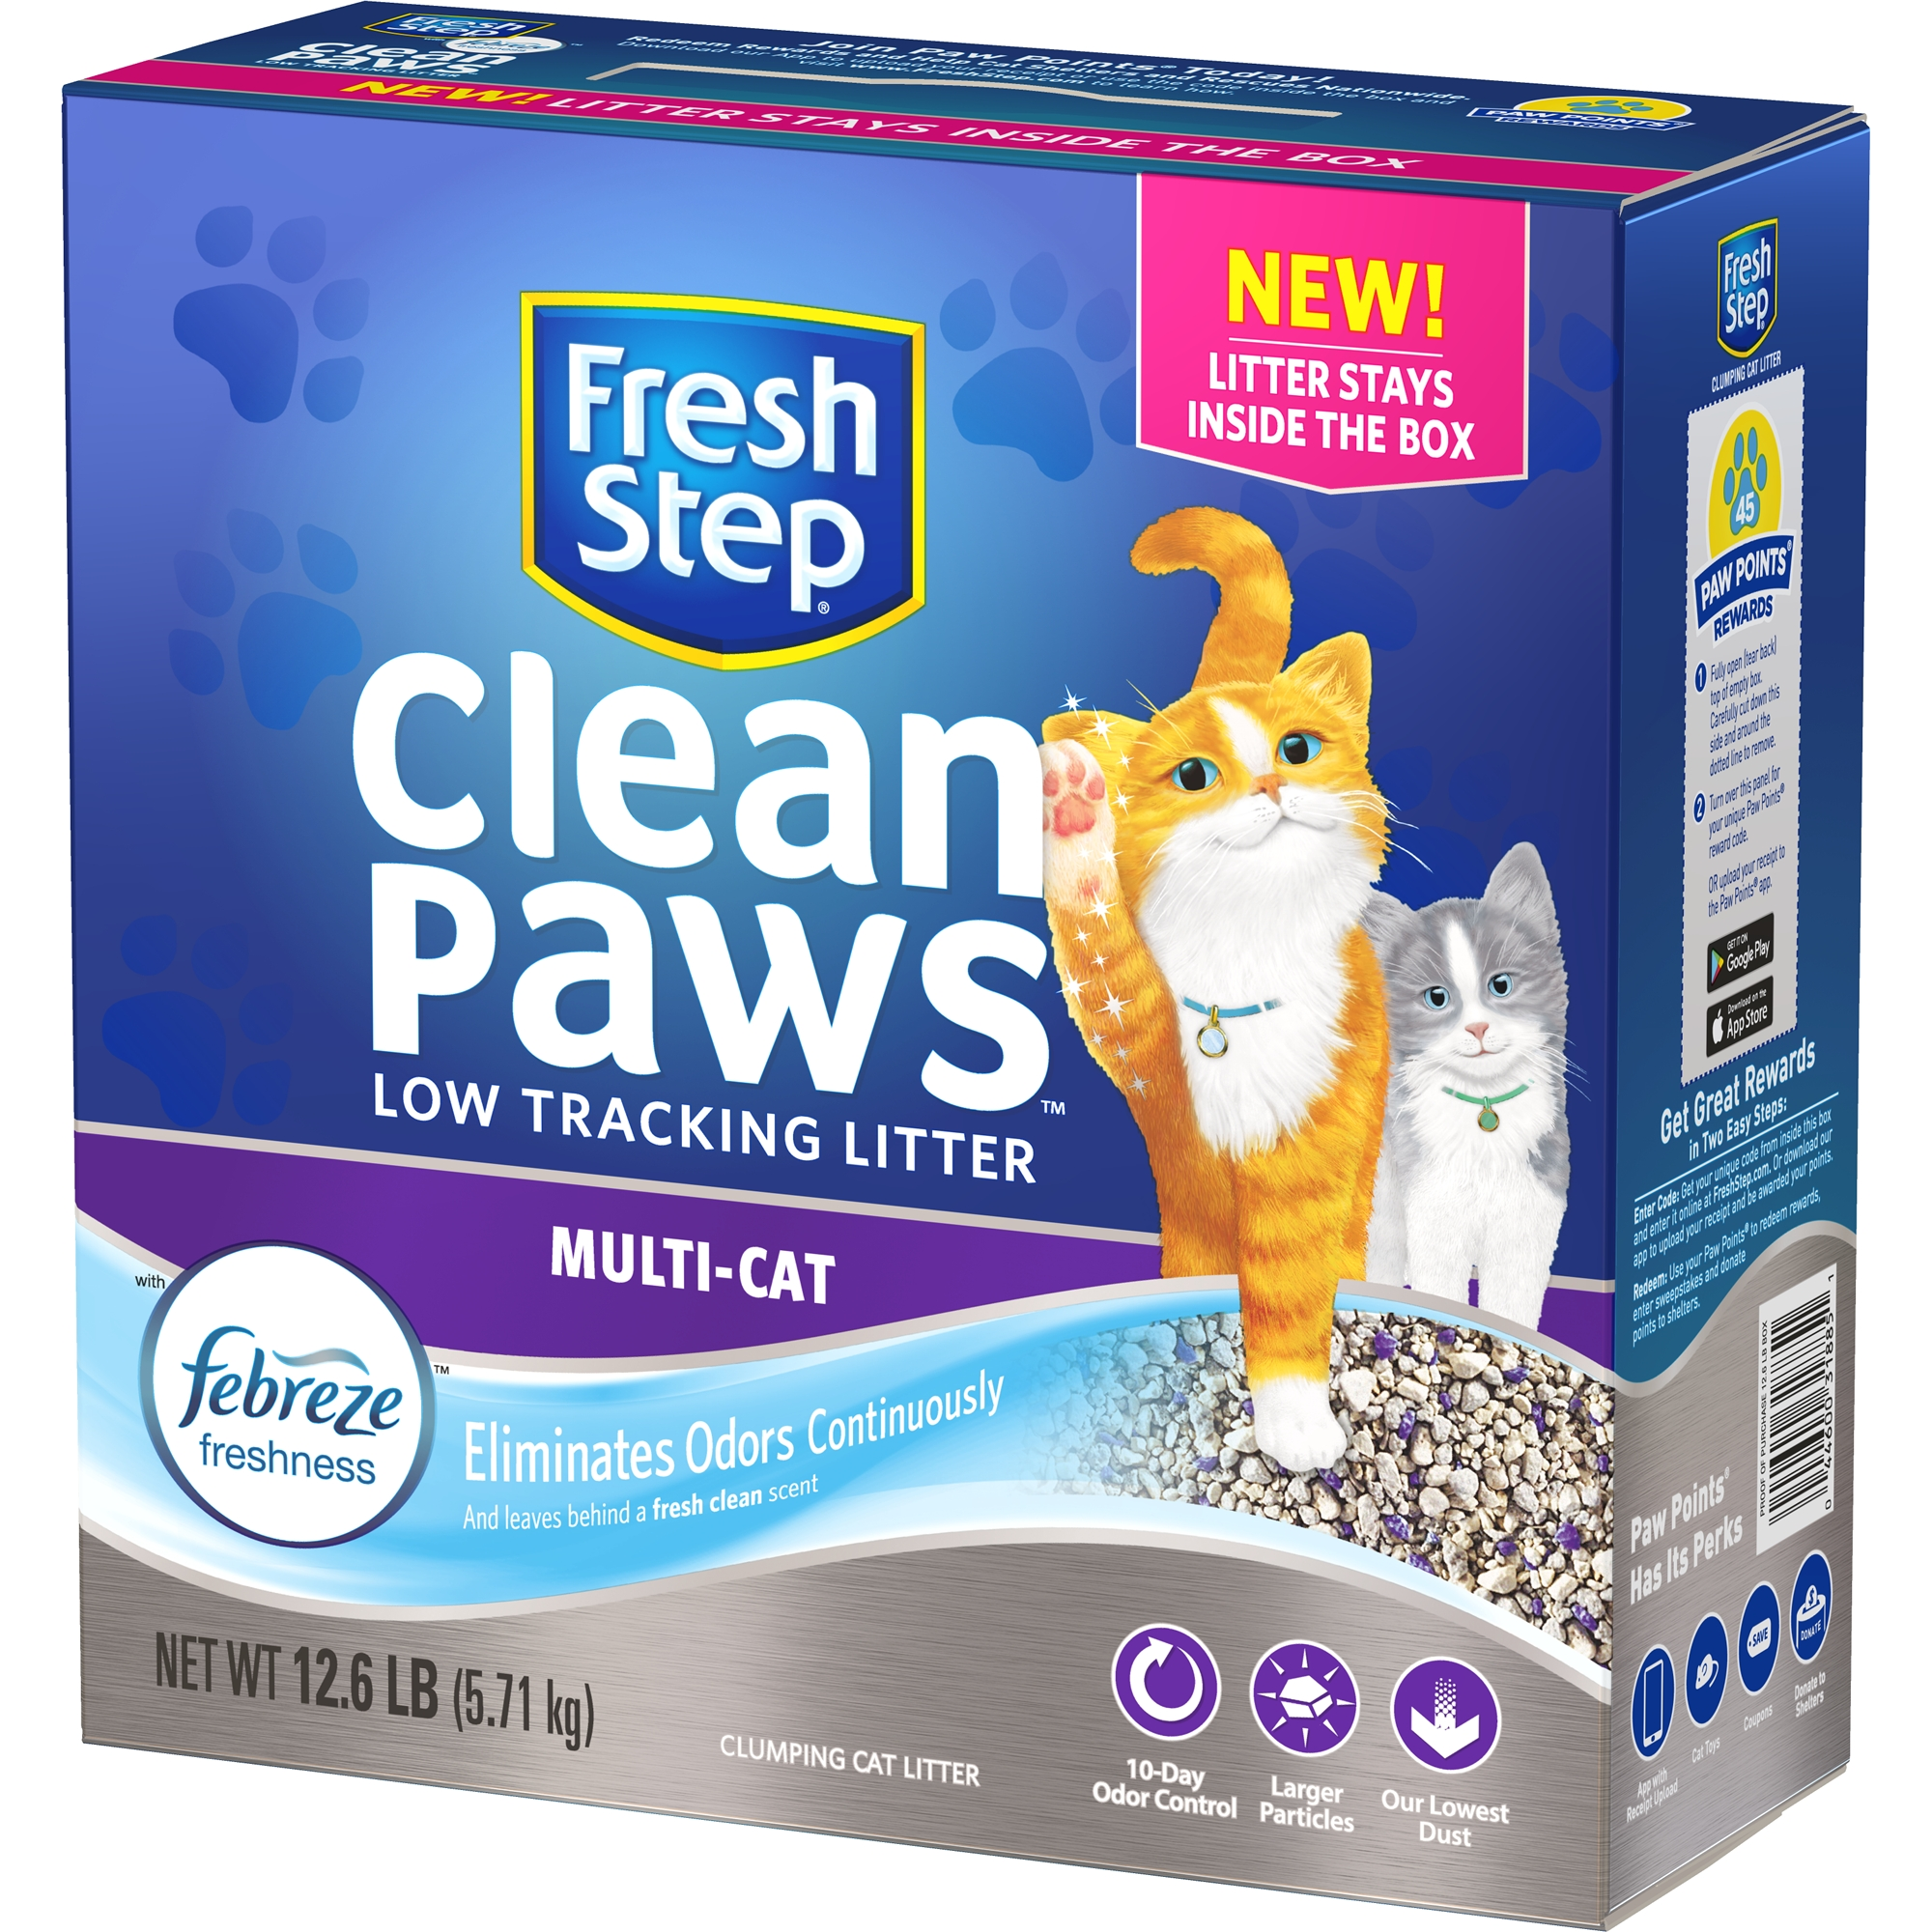 Fresh Step Clean Paws Multi-Cat Scented Litter with the Power of Febreze, Clumping Cat Litter, 12.6-lb